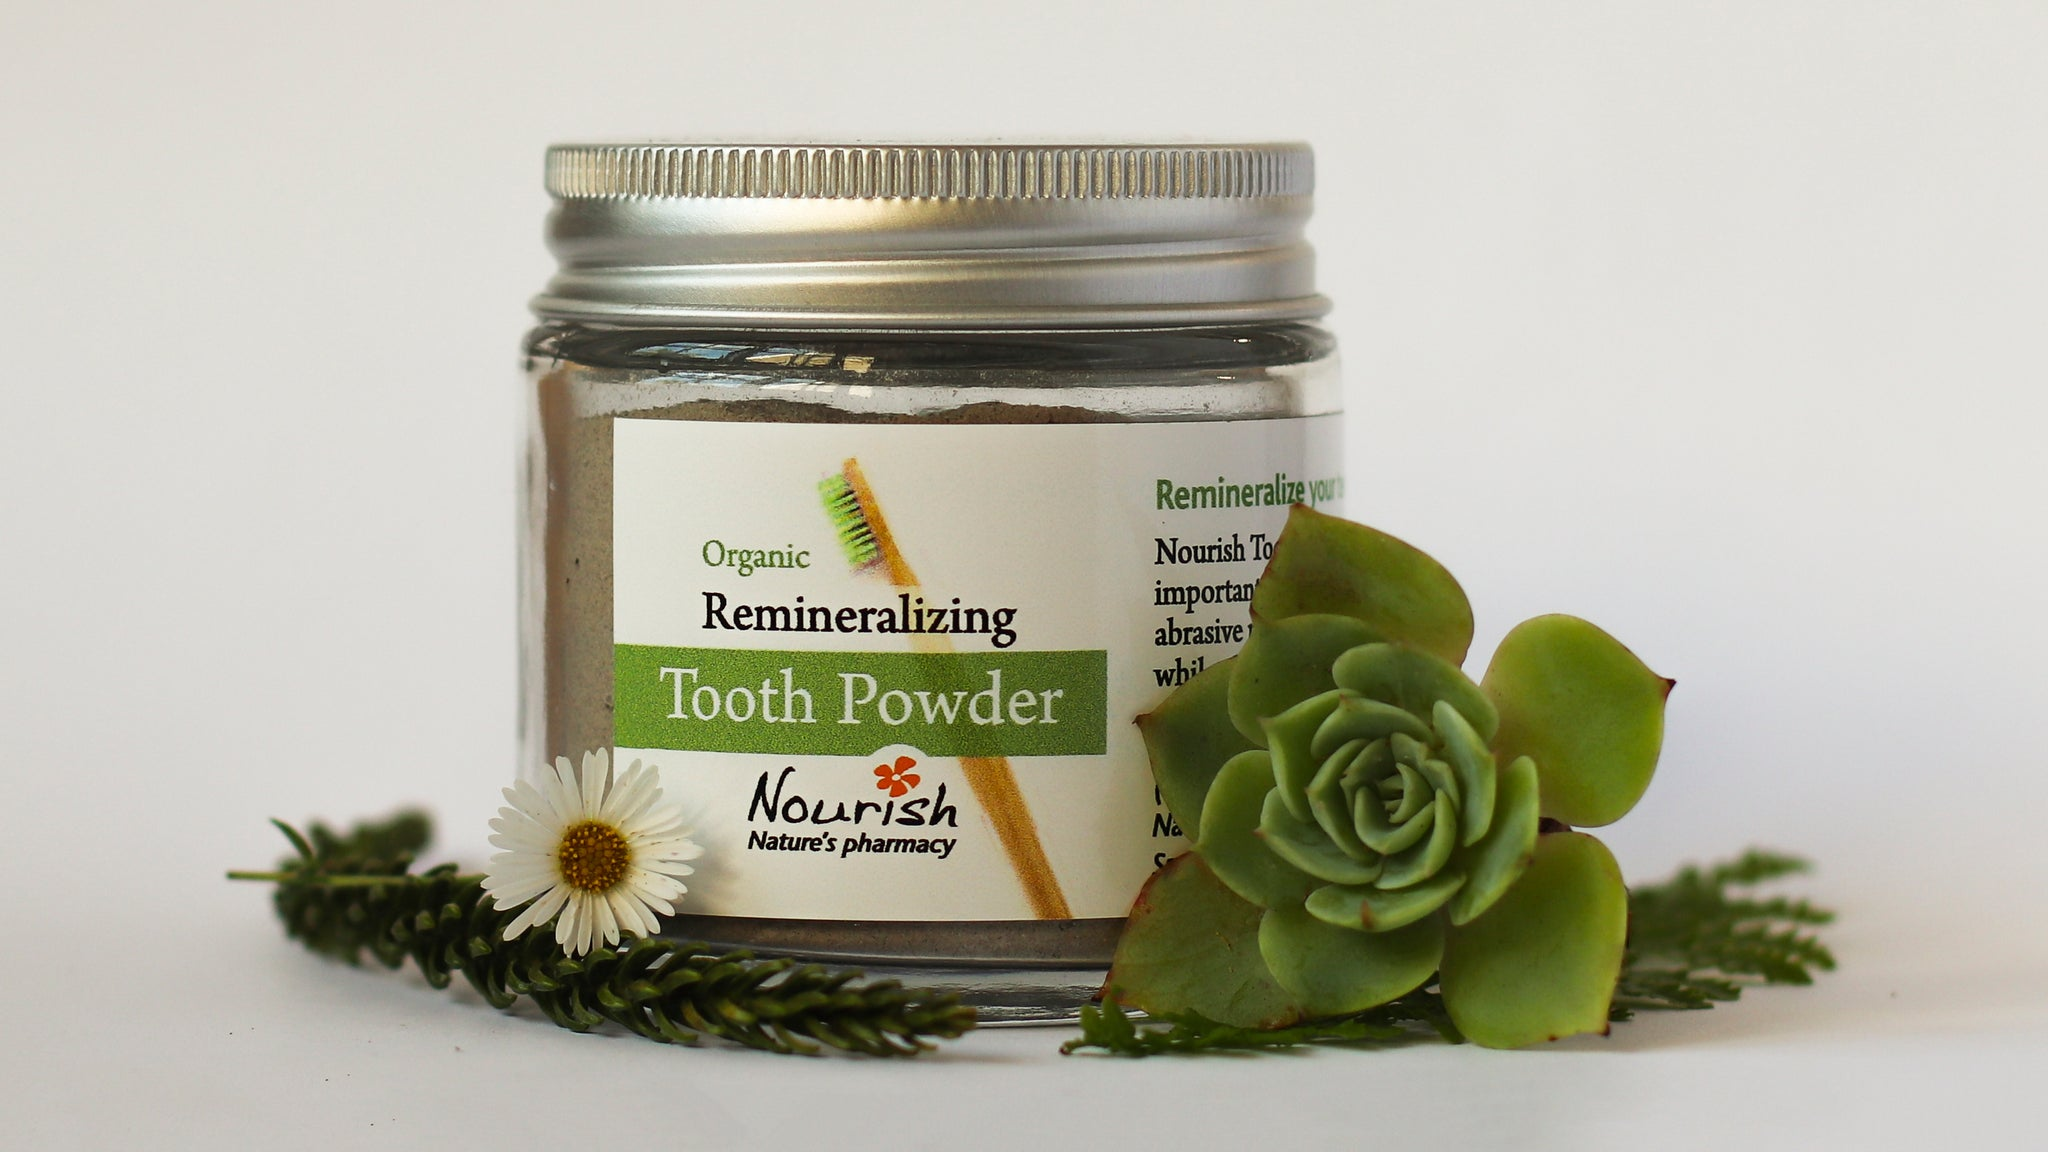 Remineralizing Toothpowder